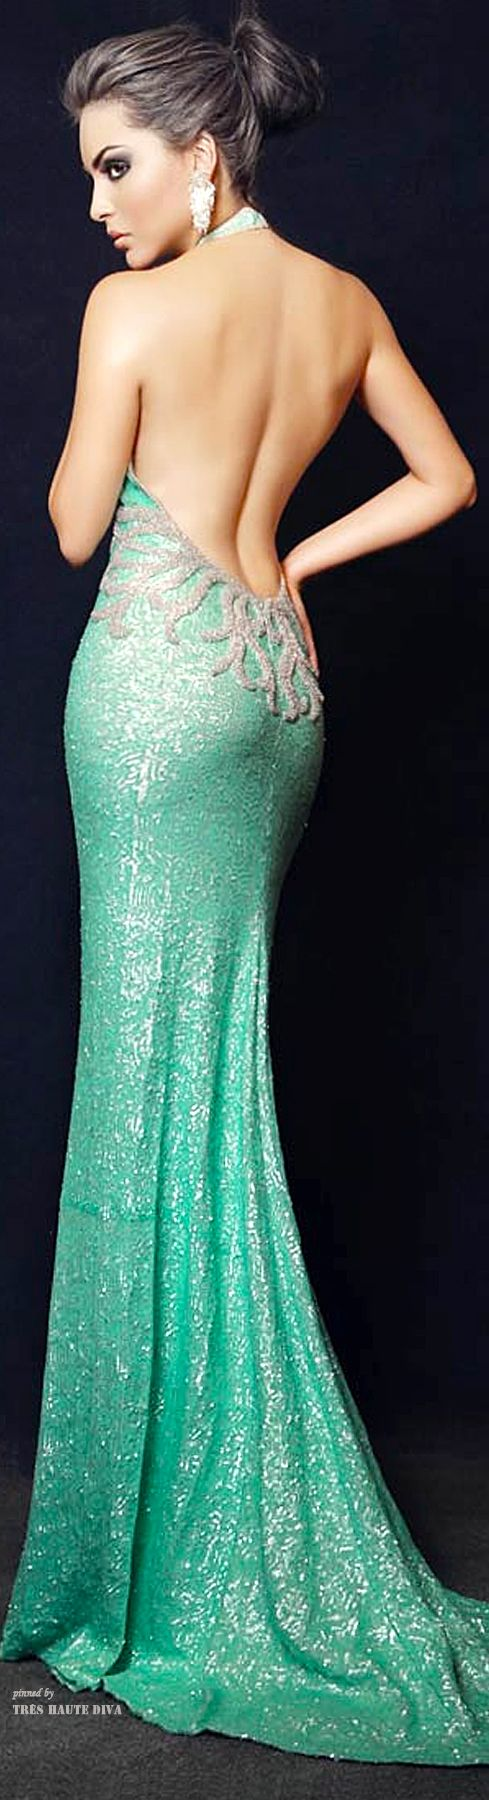 Pin by Marilyn Fontbin on Year End Pirates & Mermaid theme ...